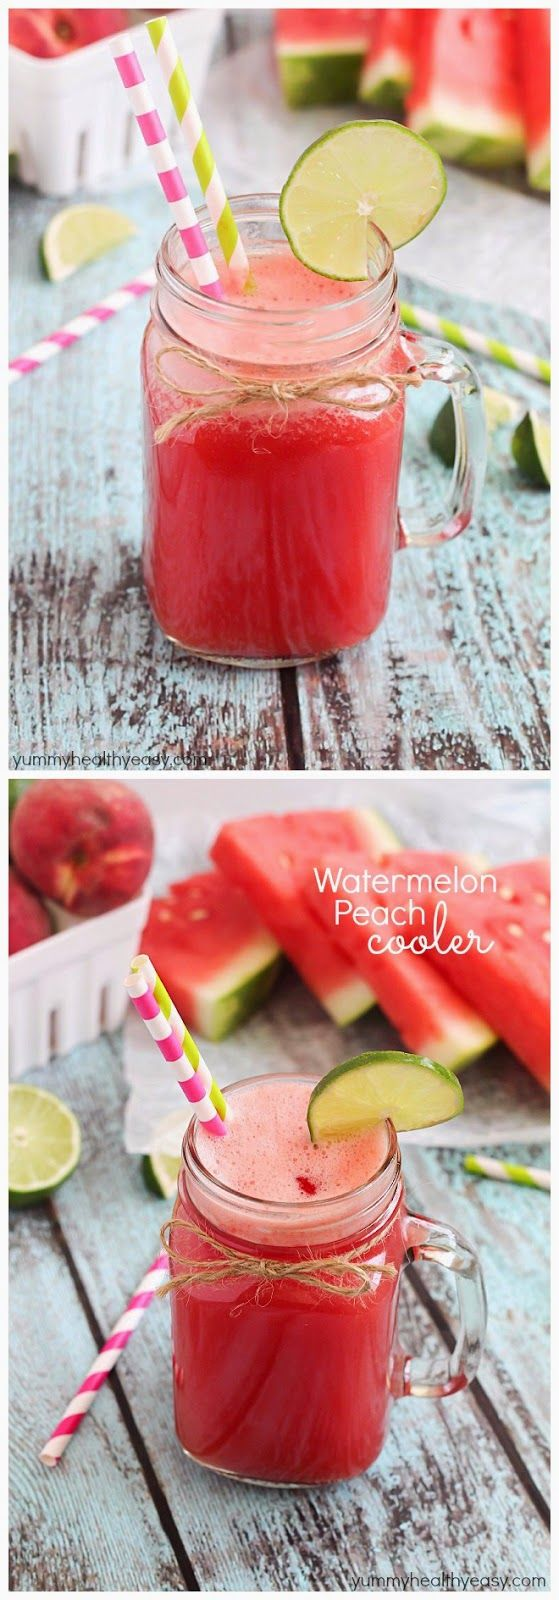 Watermelon Peach Cooler - Food Recipes by Damla (watermelon alcoholic drinks blenders)